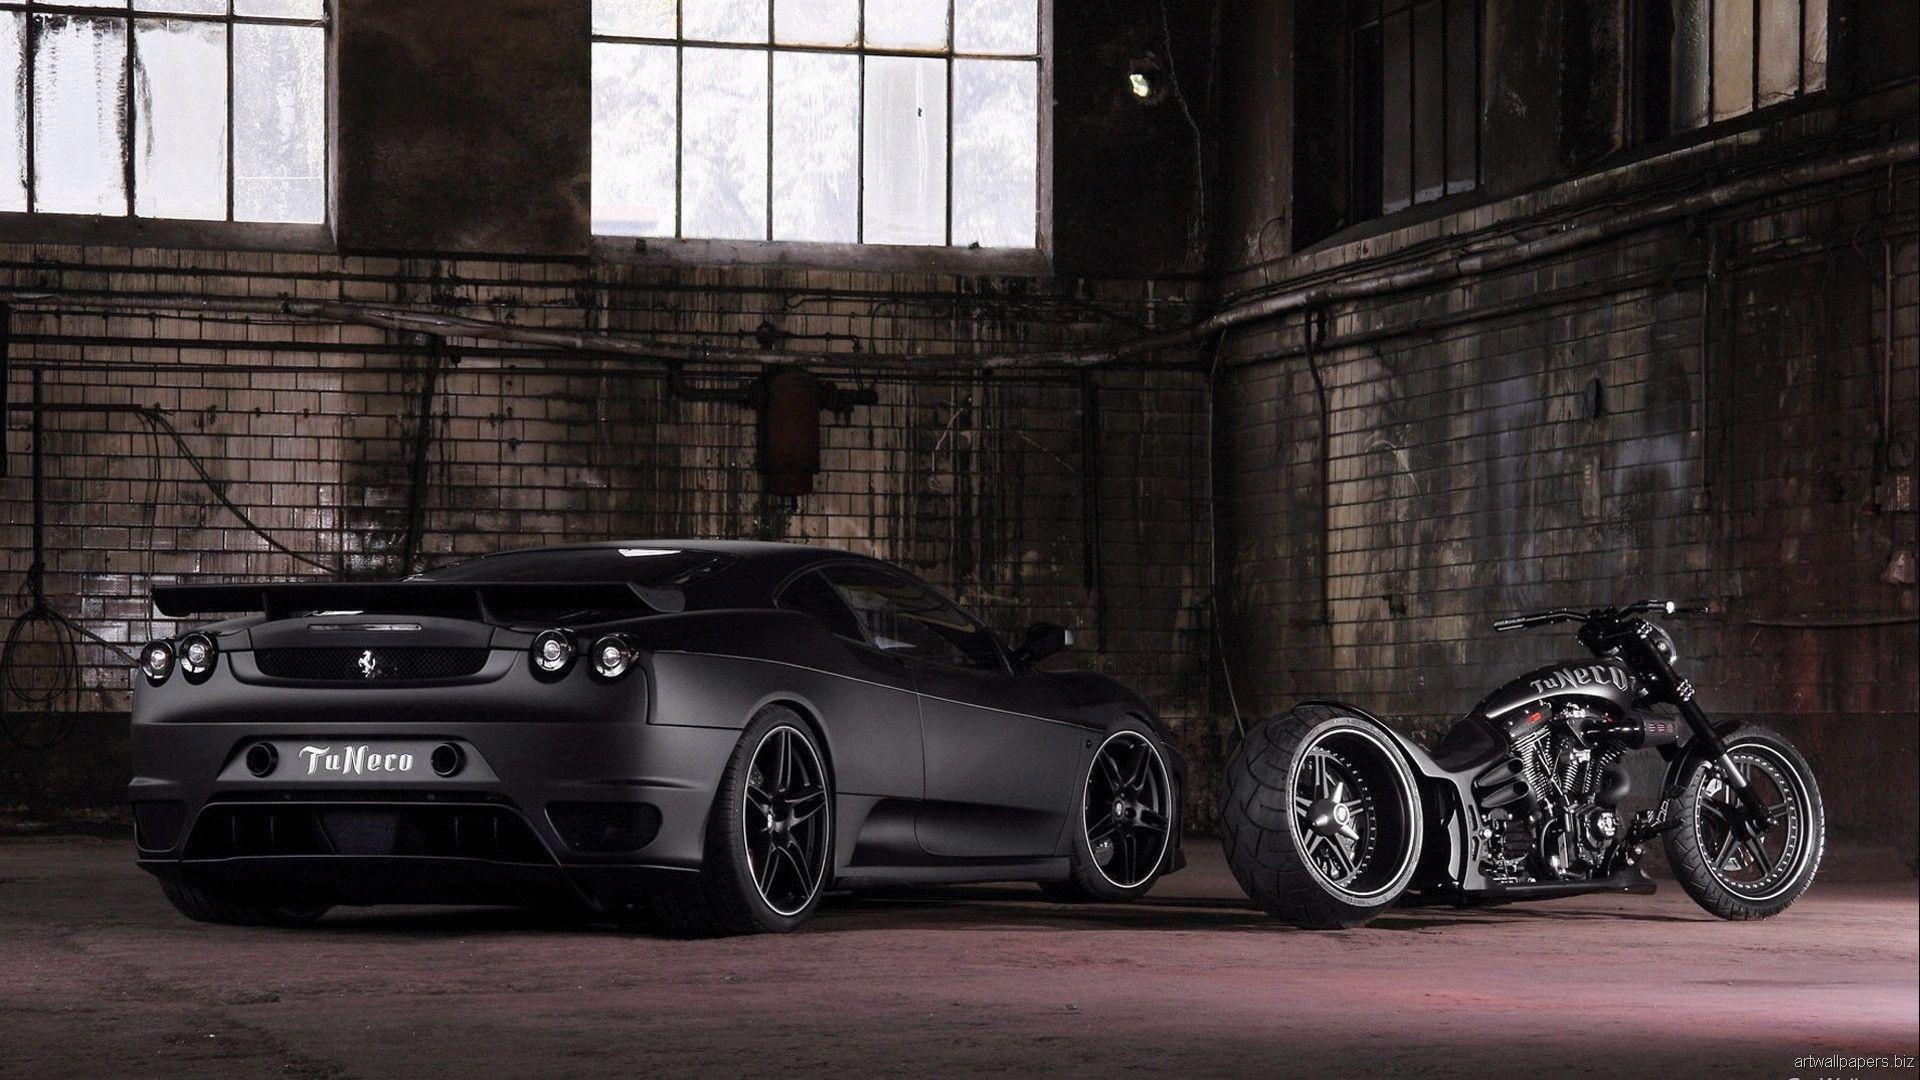 sick wallpapers hd cars - photo #45